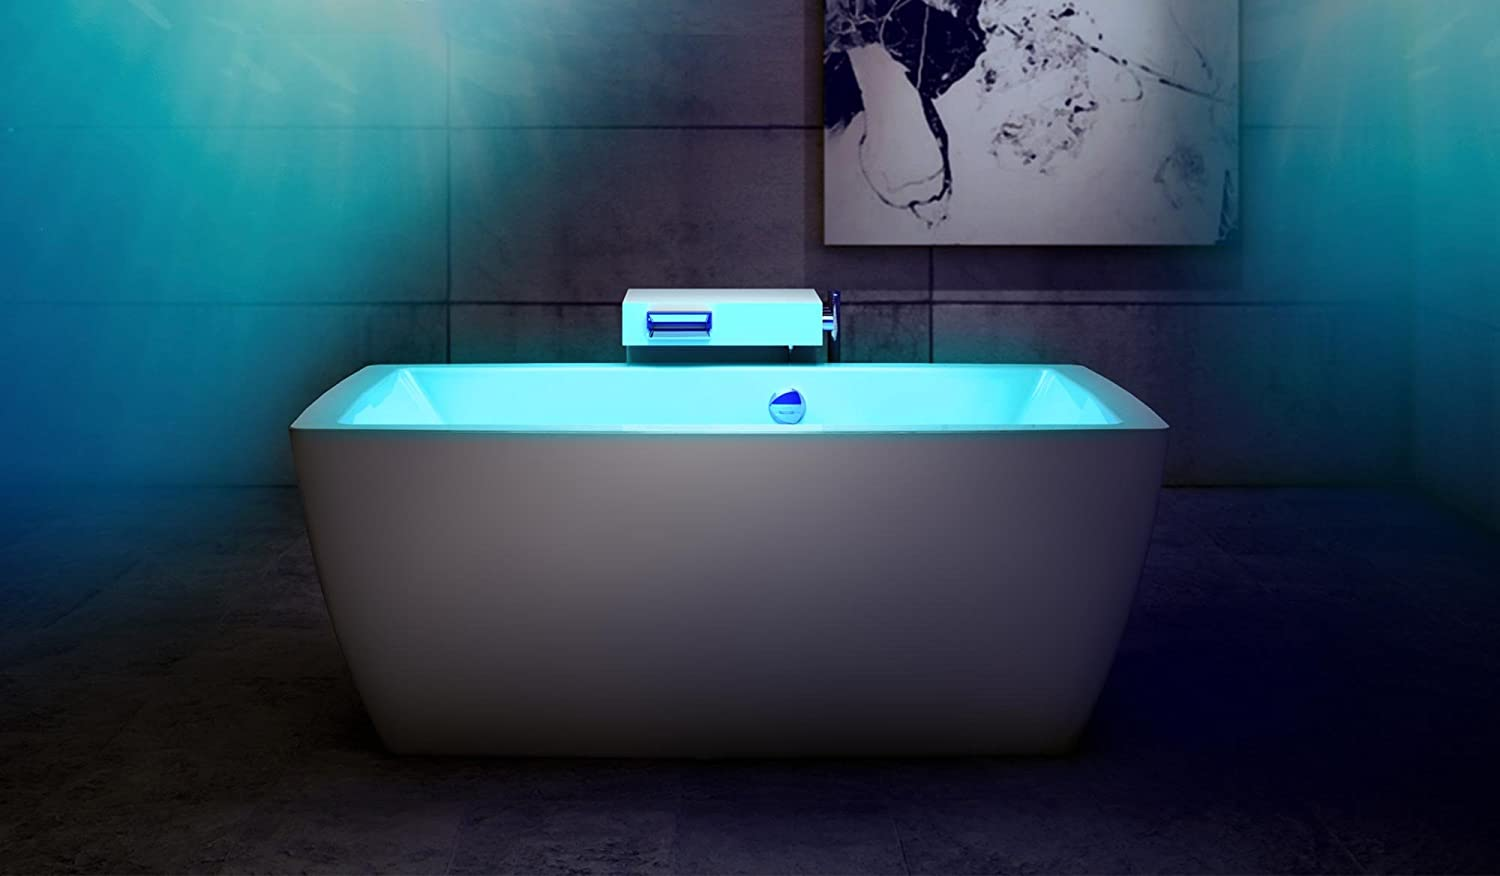 BainUltra Origami Bathtub - - Amazon.com